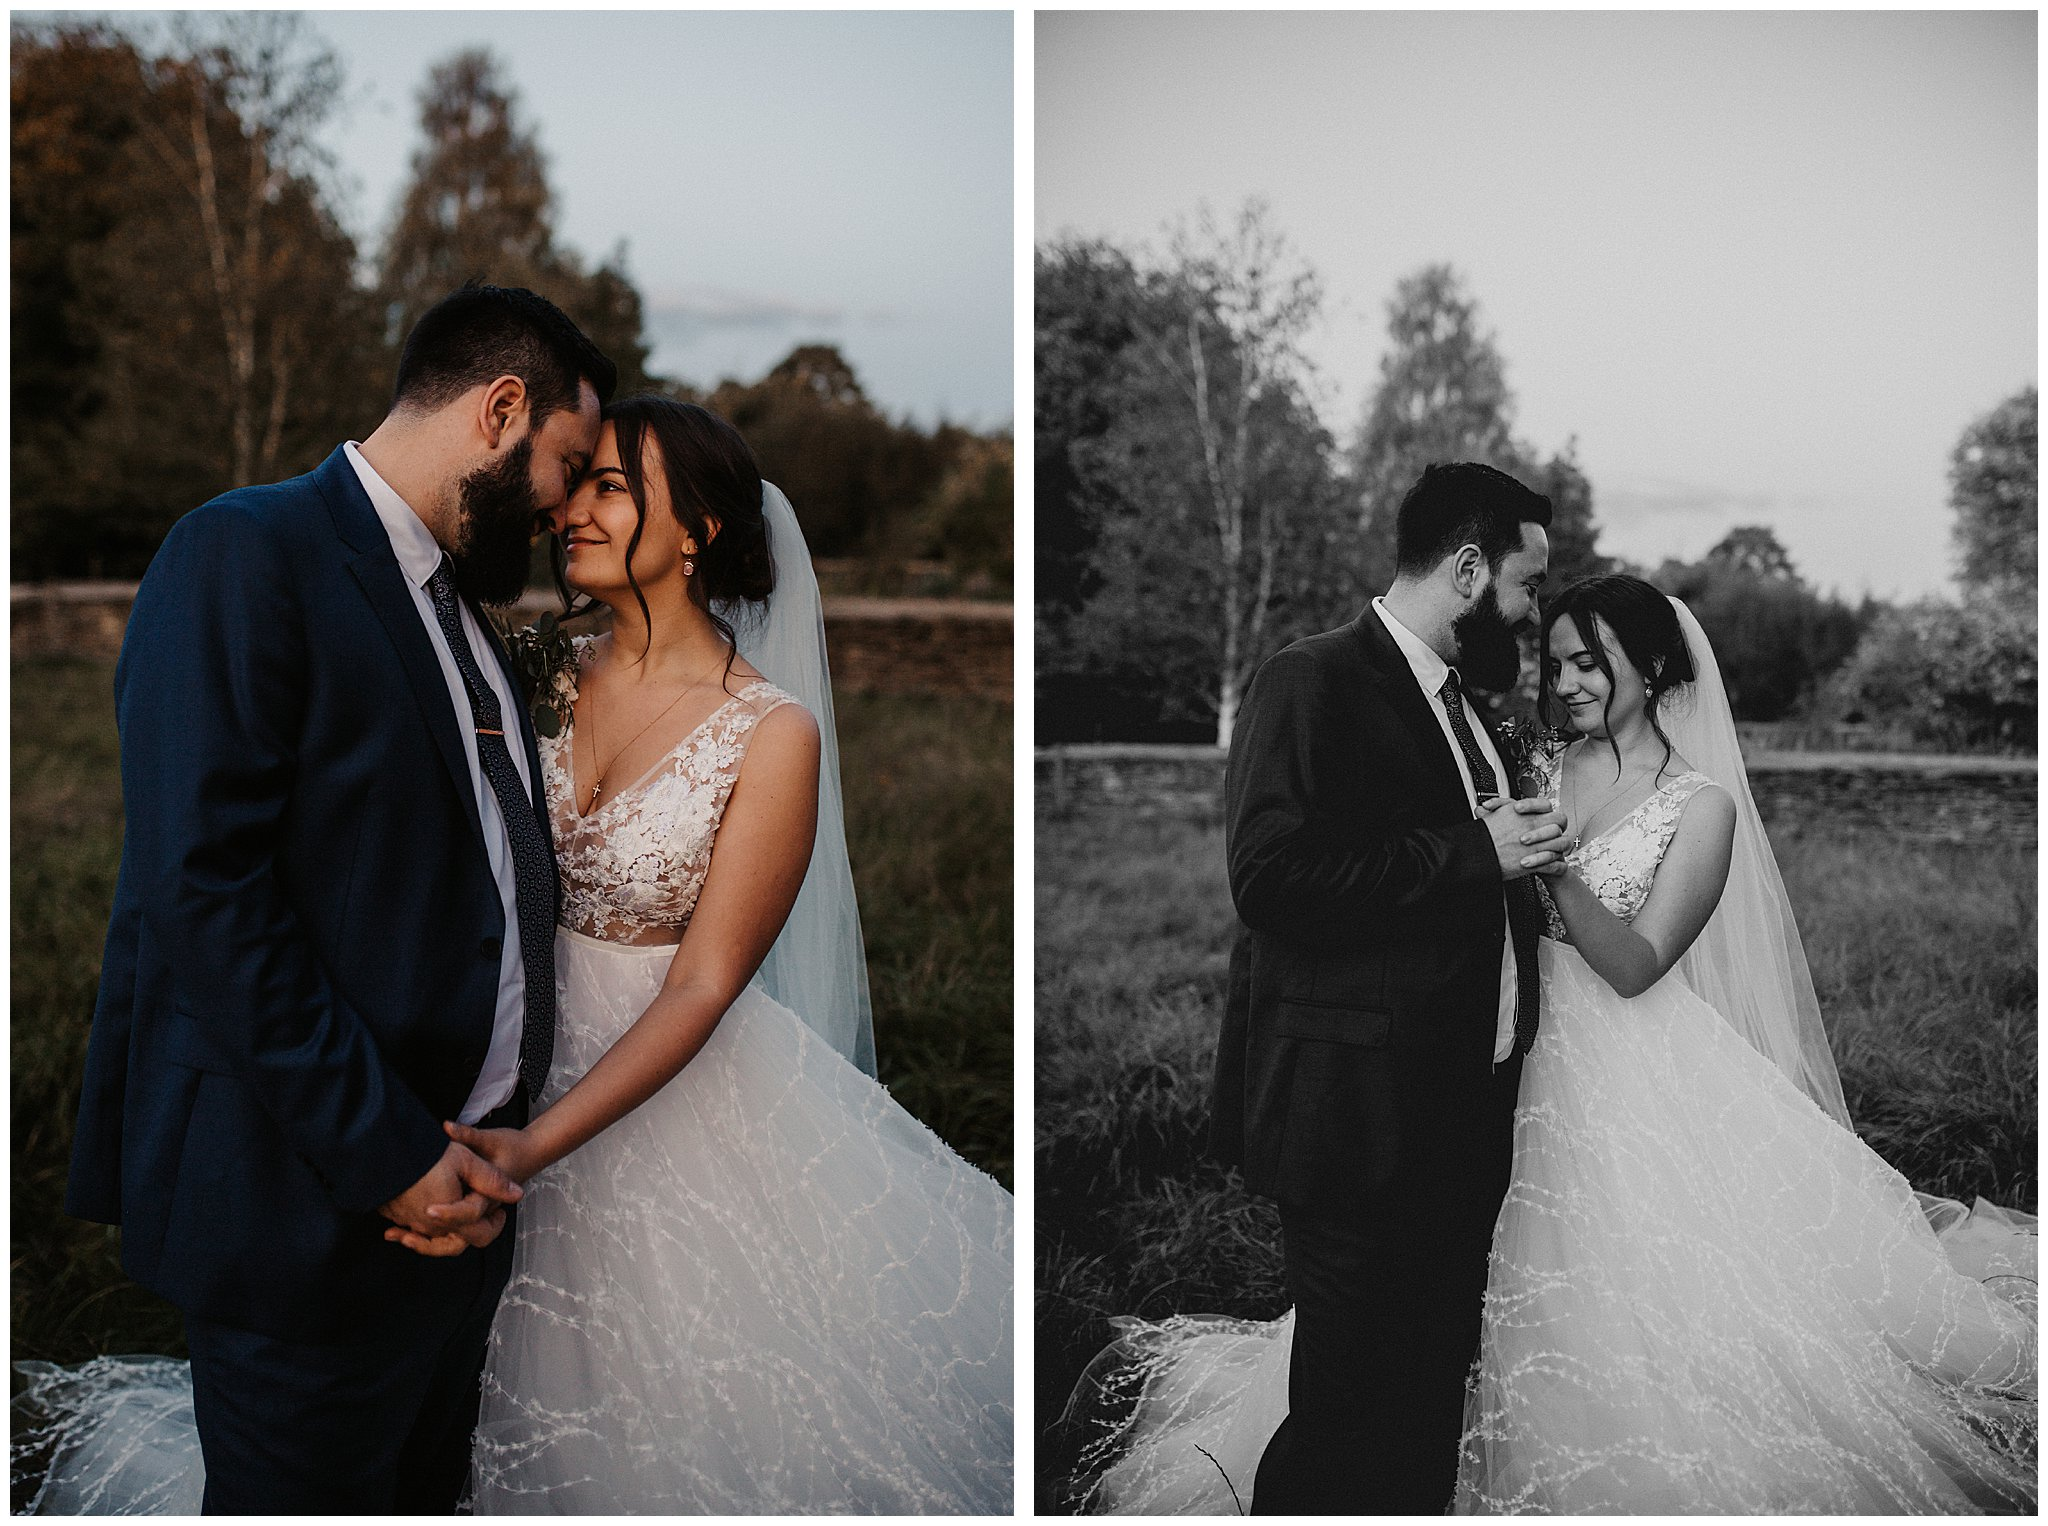 Max & Ksenia Autumnal Wiltshire Wedding-823.jpg